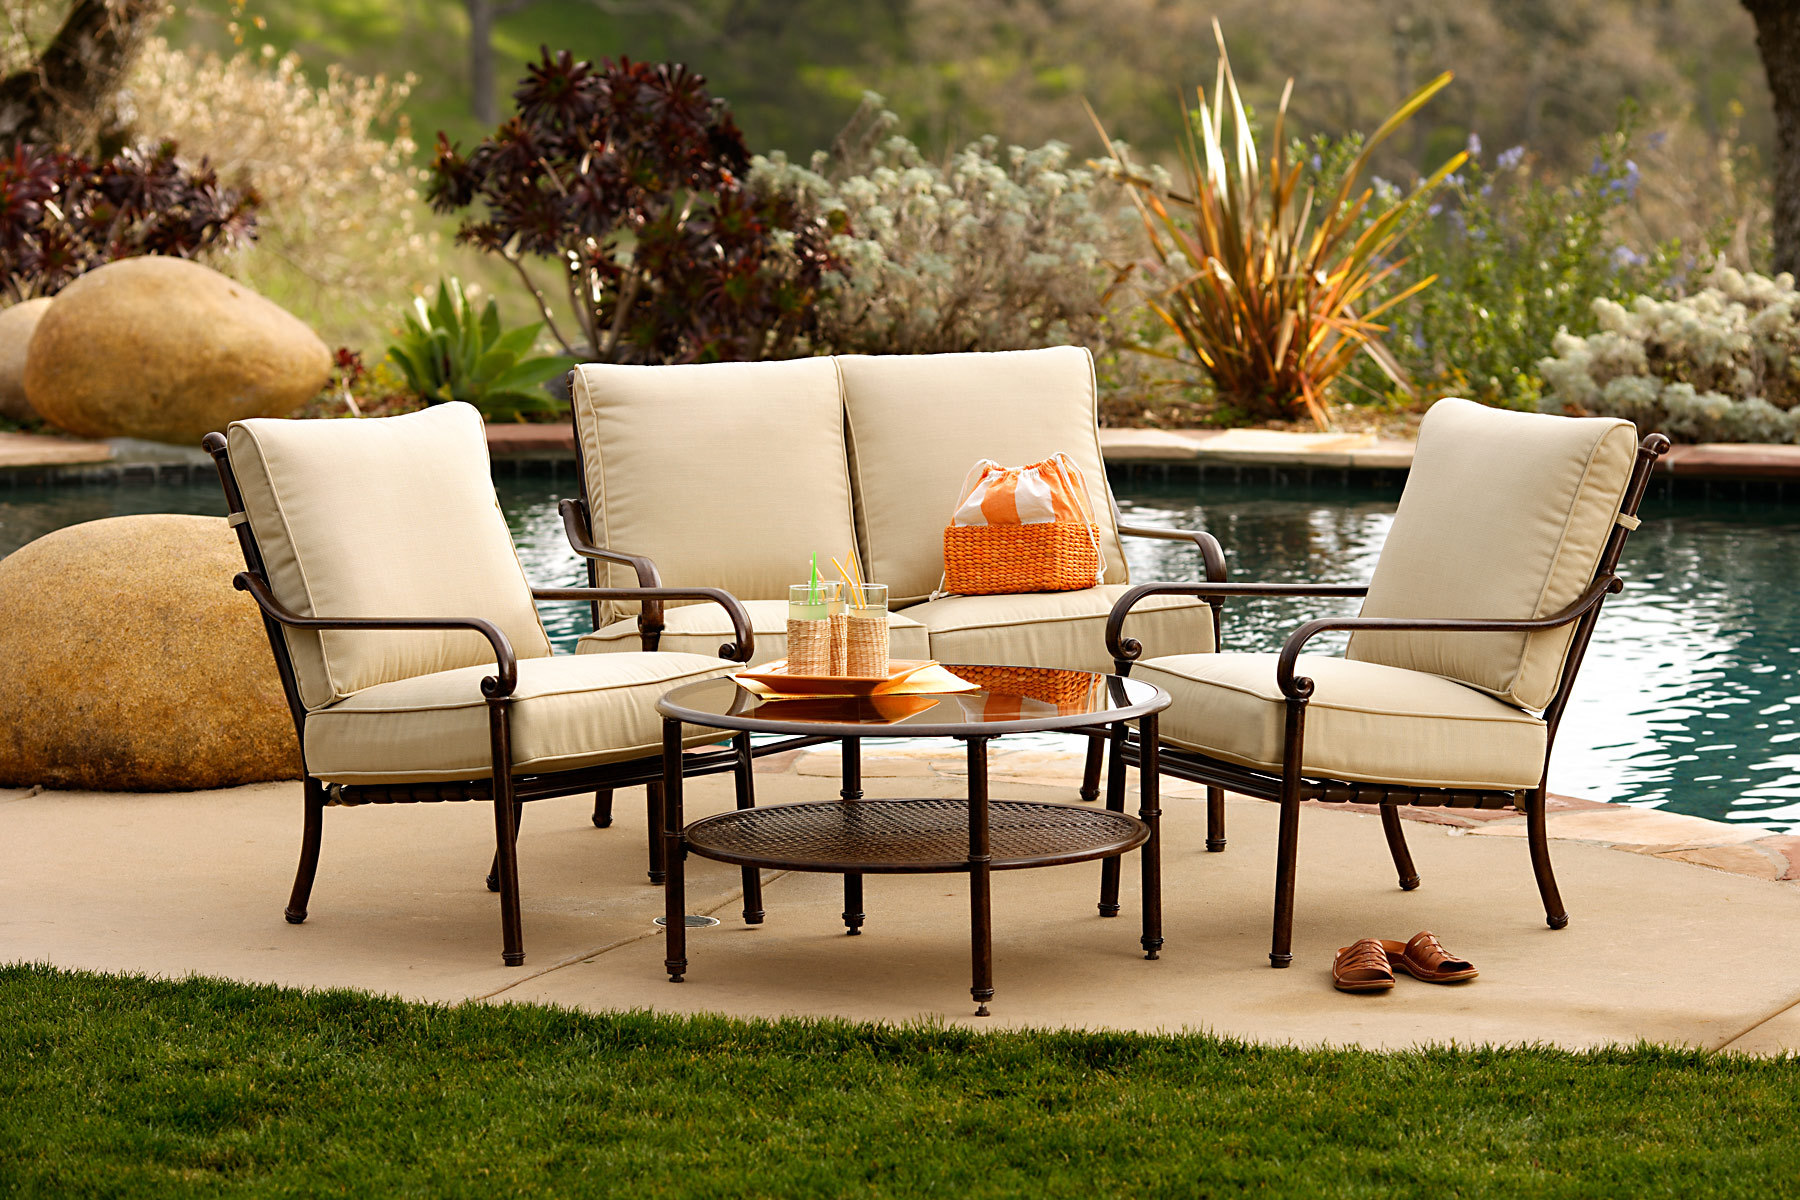 outdoor garden furniture outdoor-patio-furniture WFKOTJA